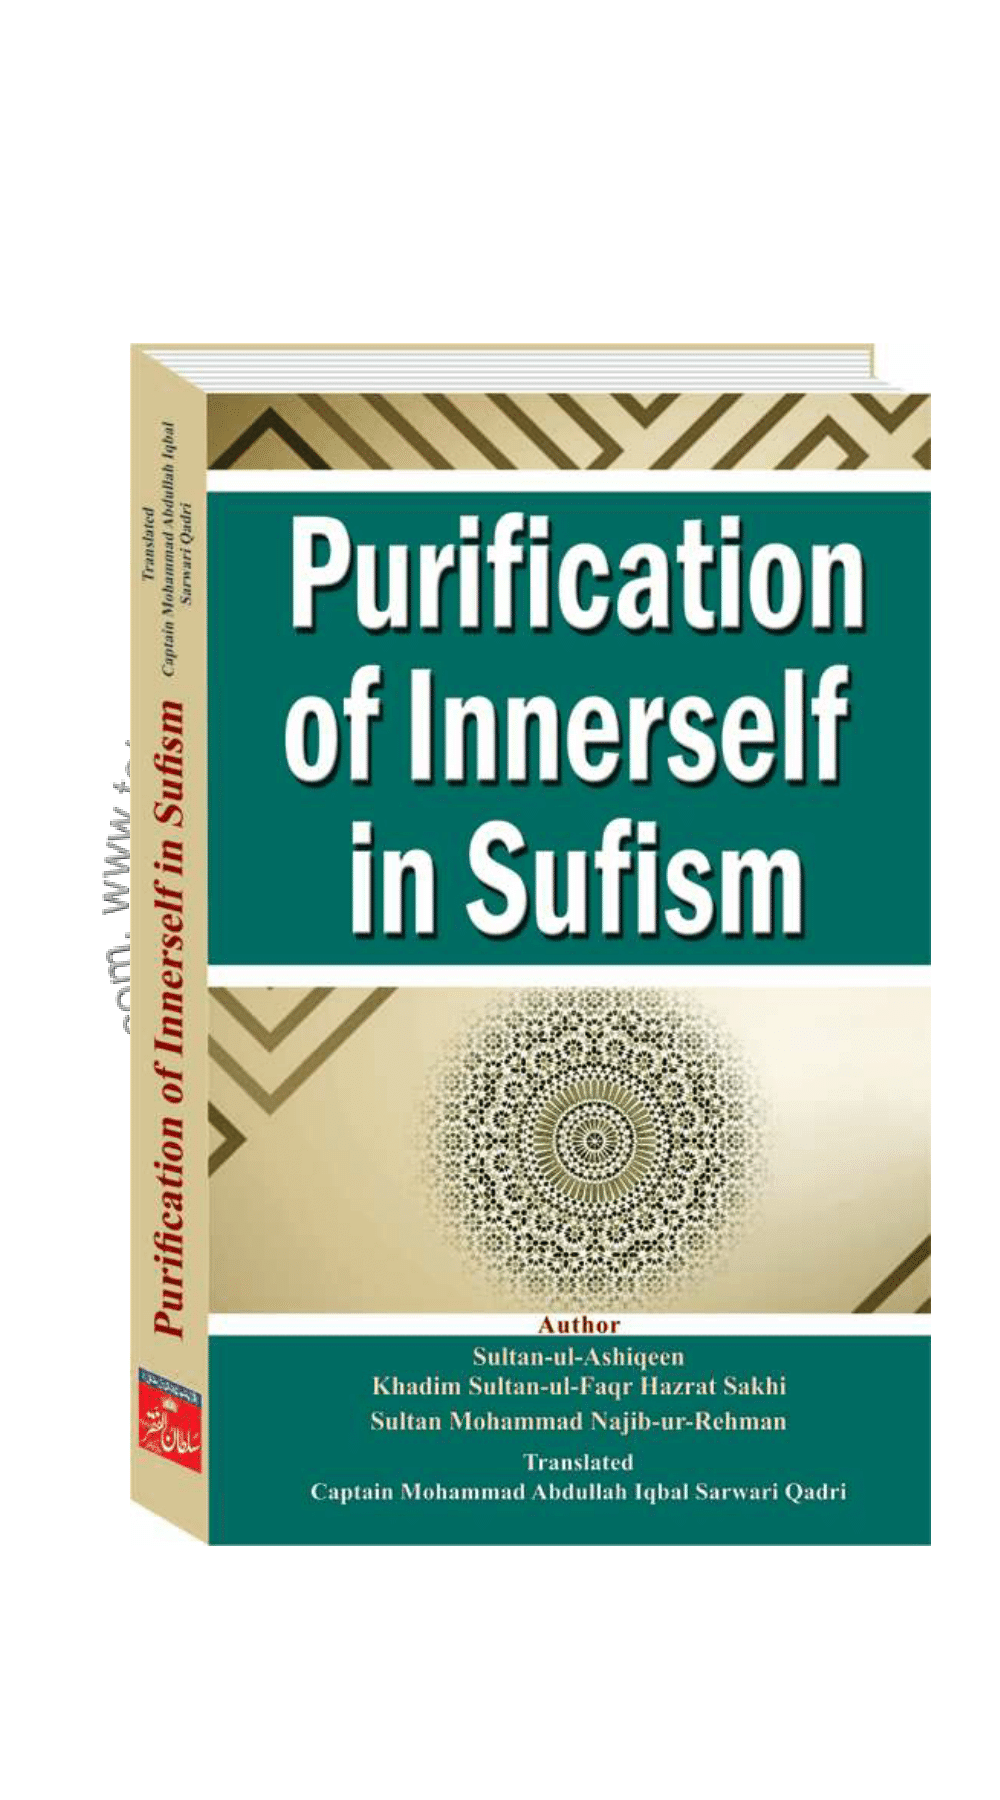 Purification-of-Innerself-in-Sufism